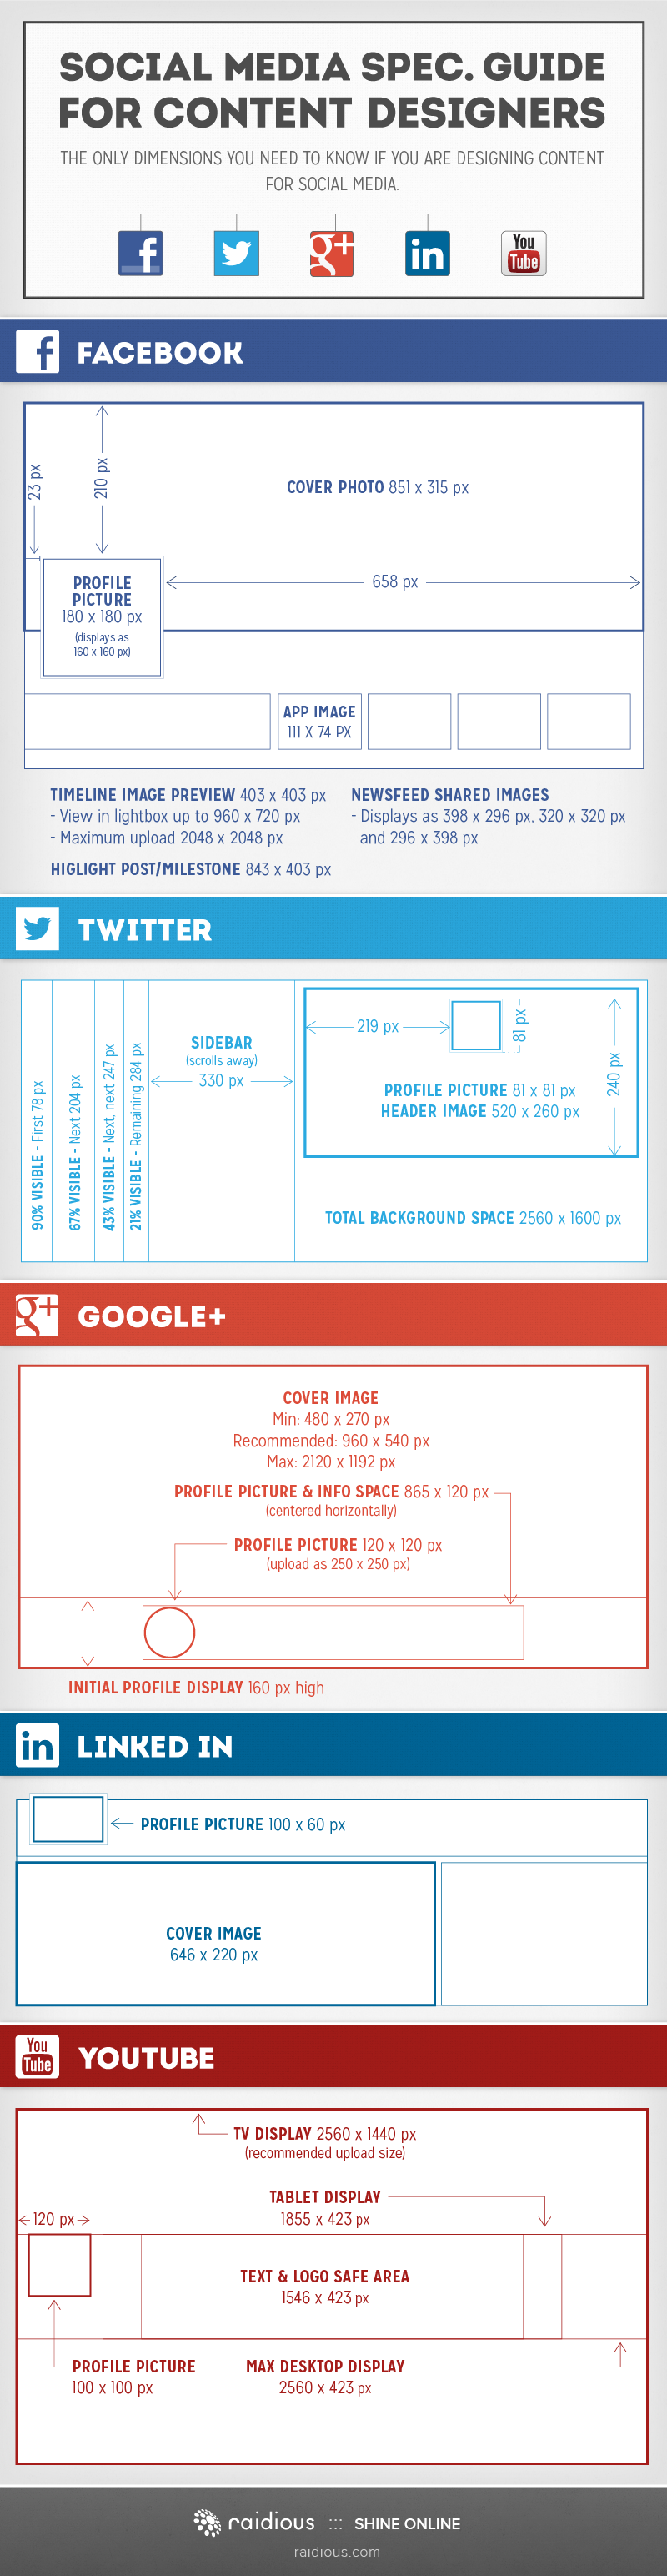 Social media image sizing guide